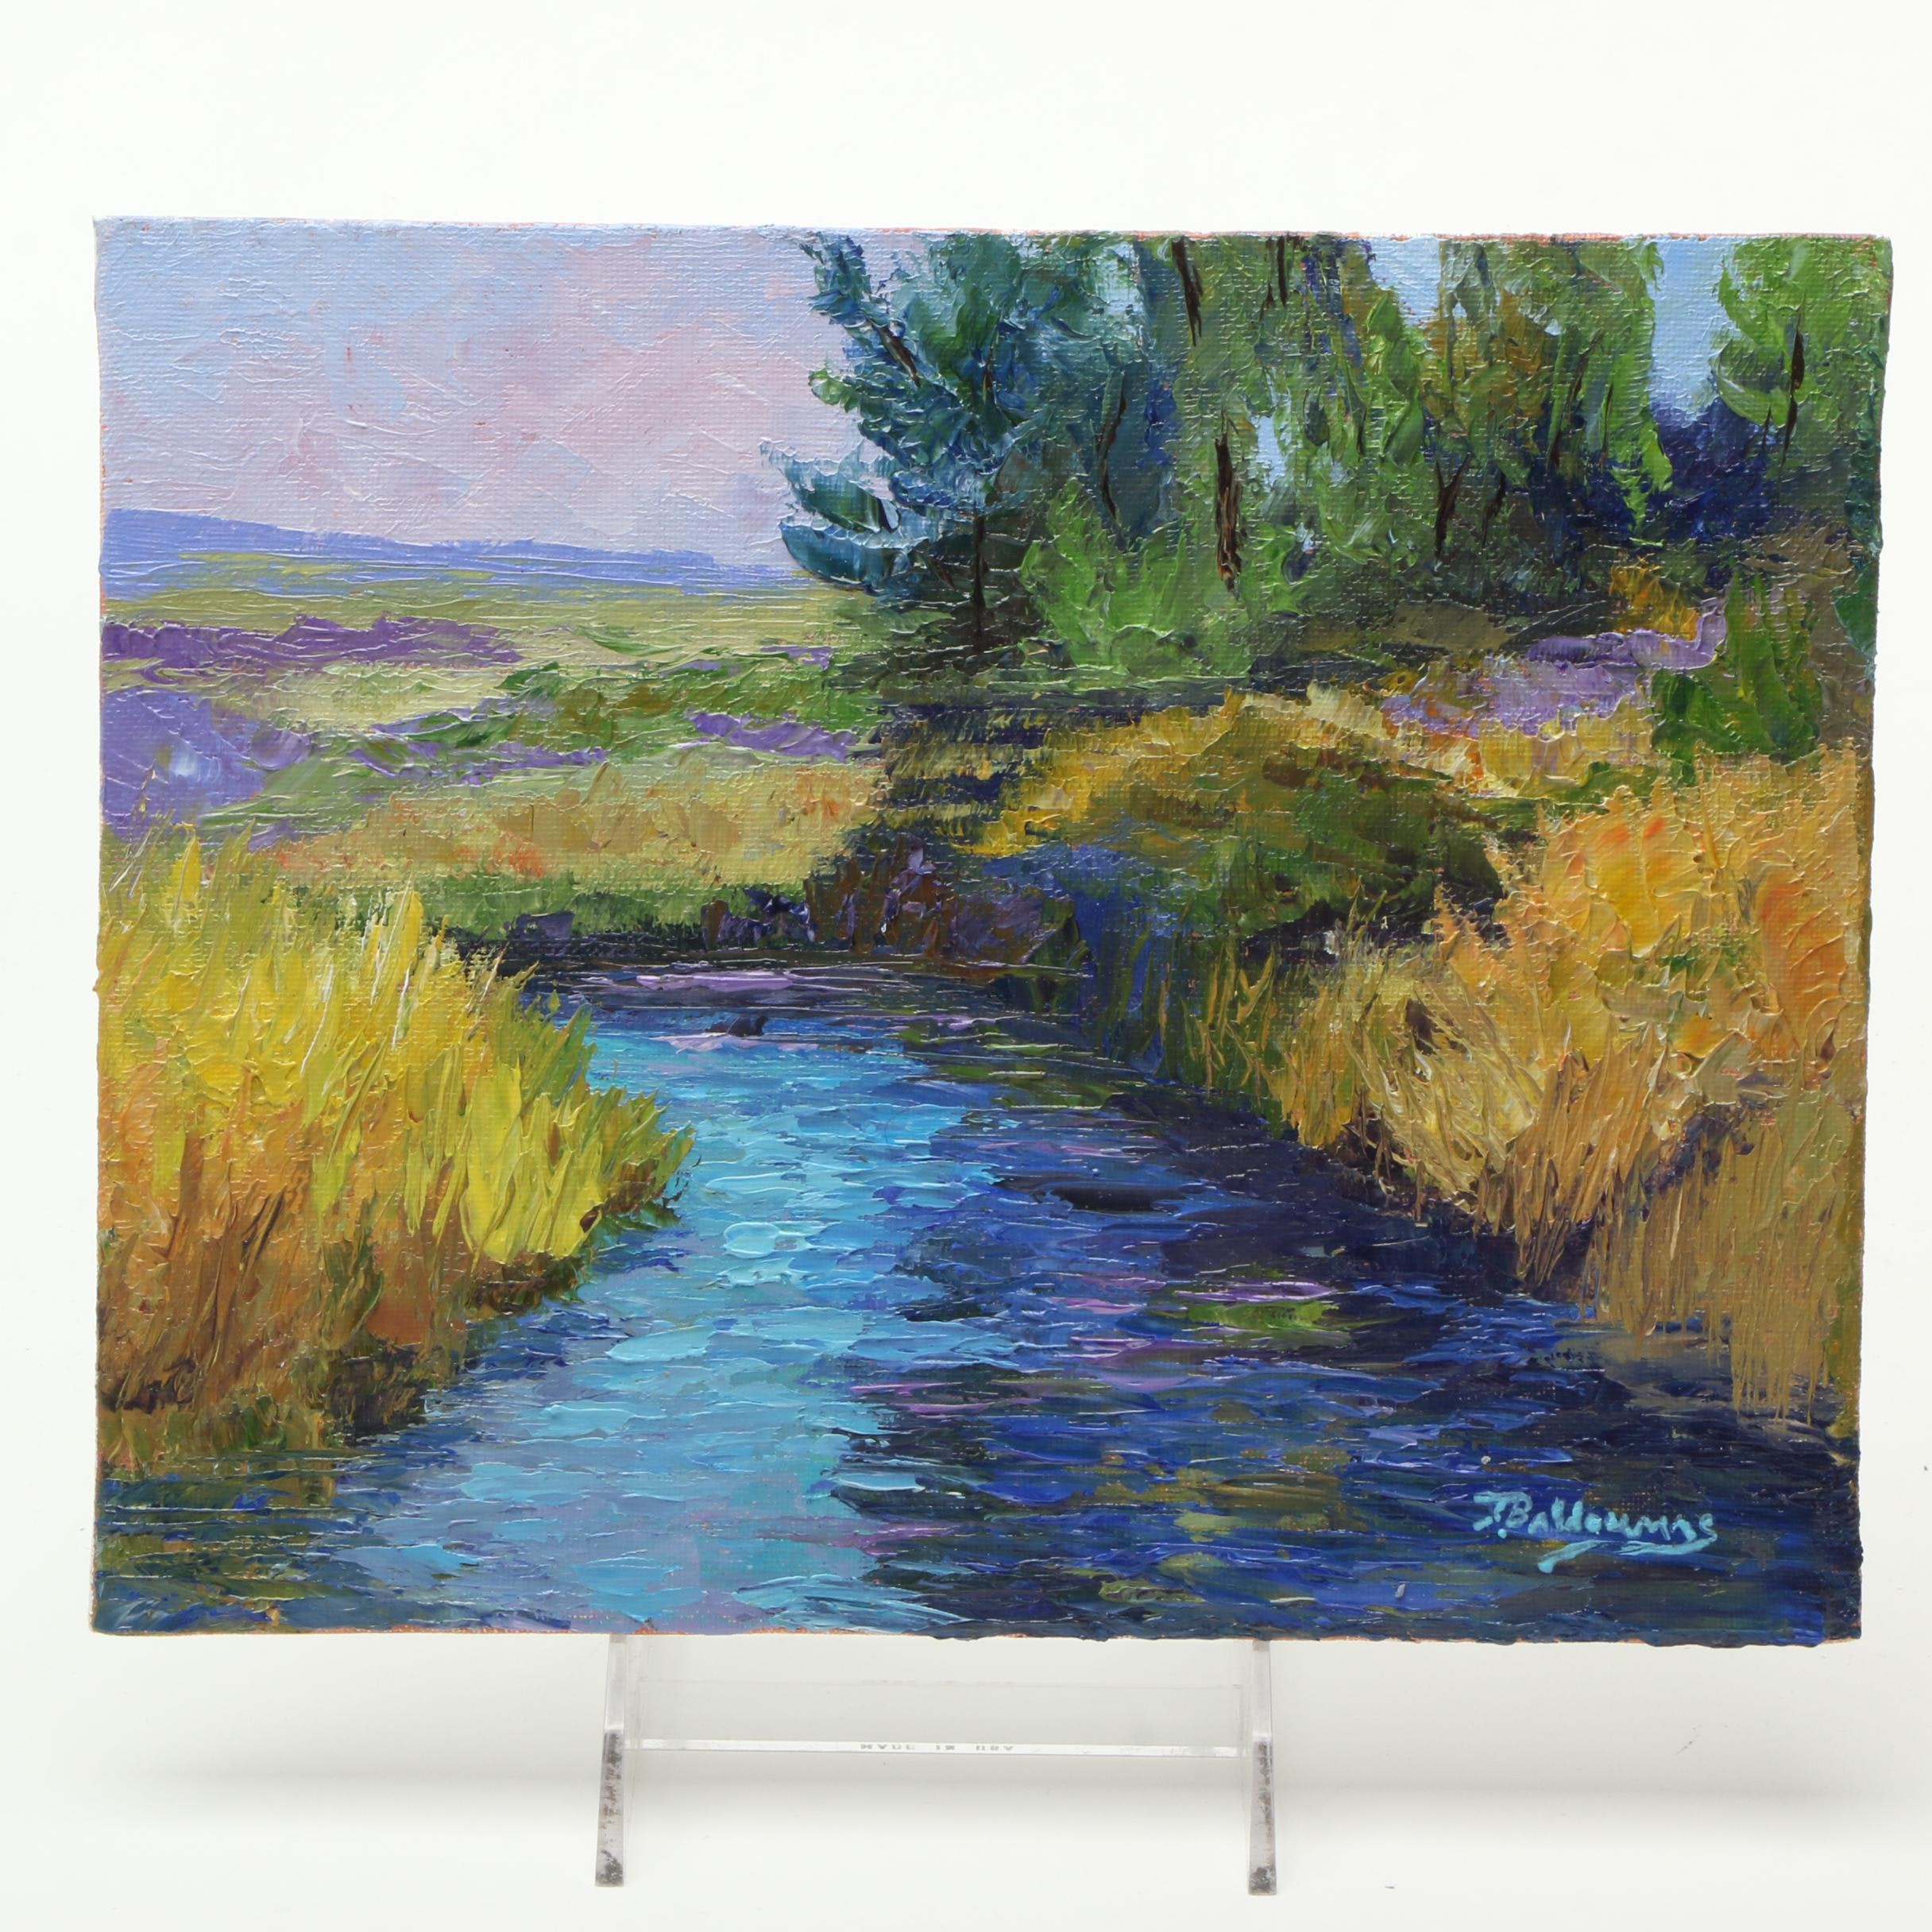 """James Baldoumas 2017 Landscape Oil Painting on Canvas Board """"Slow Moving Stream"""""""